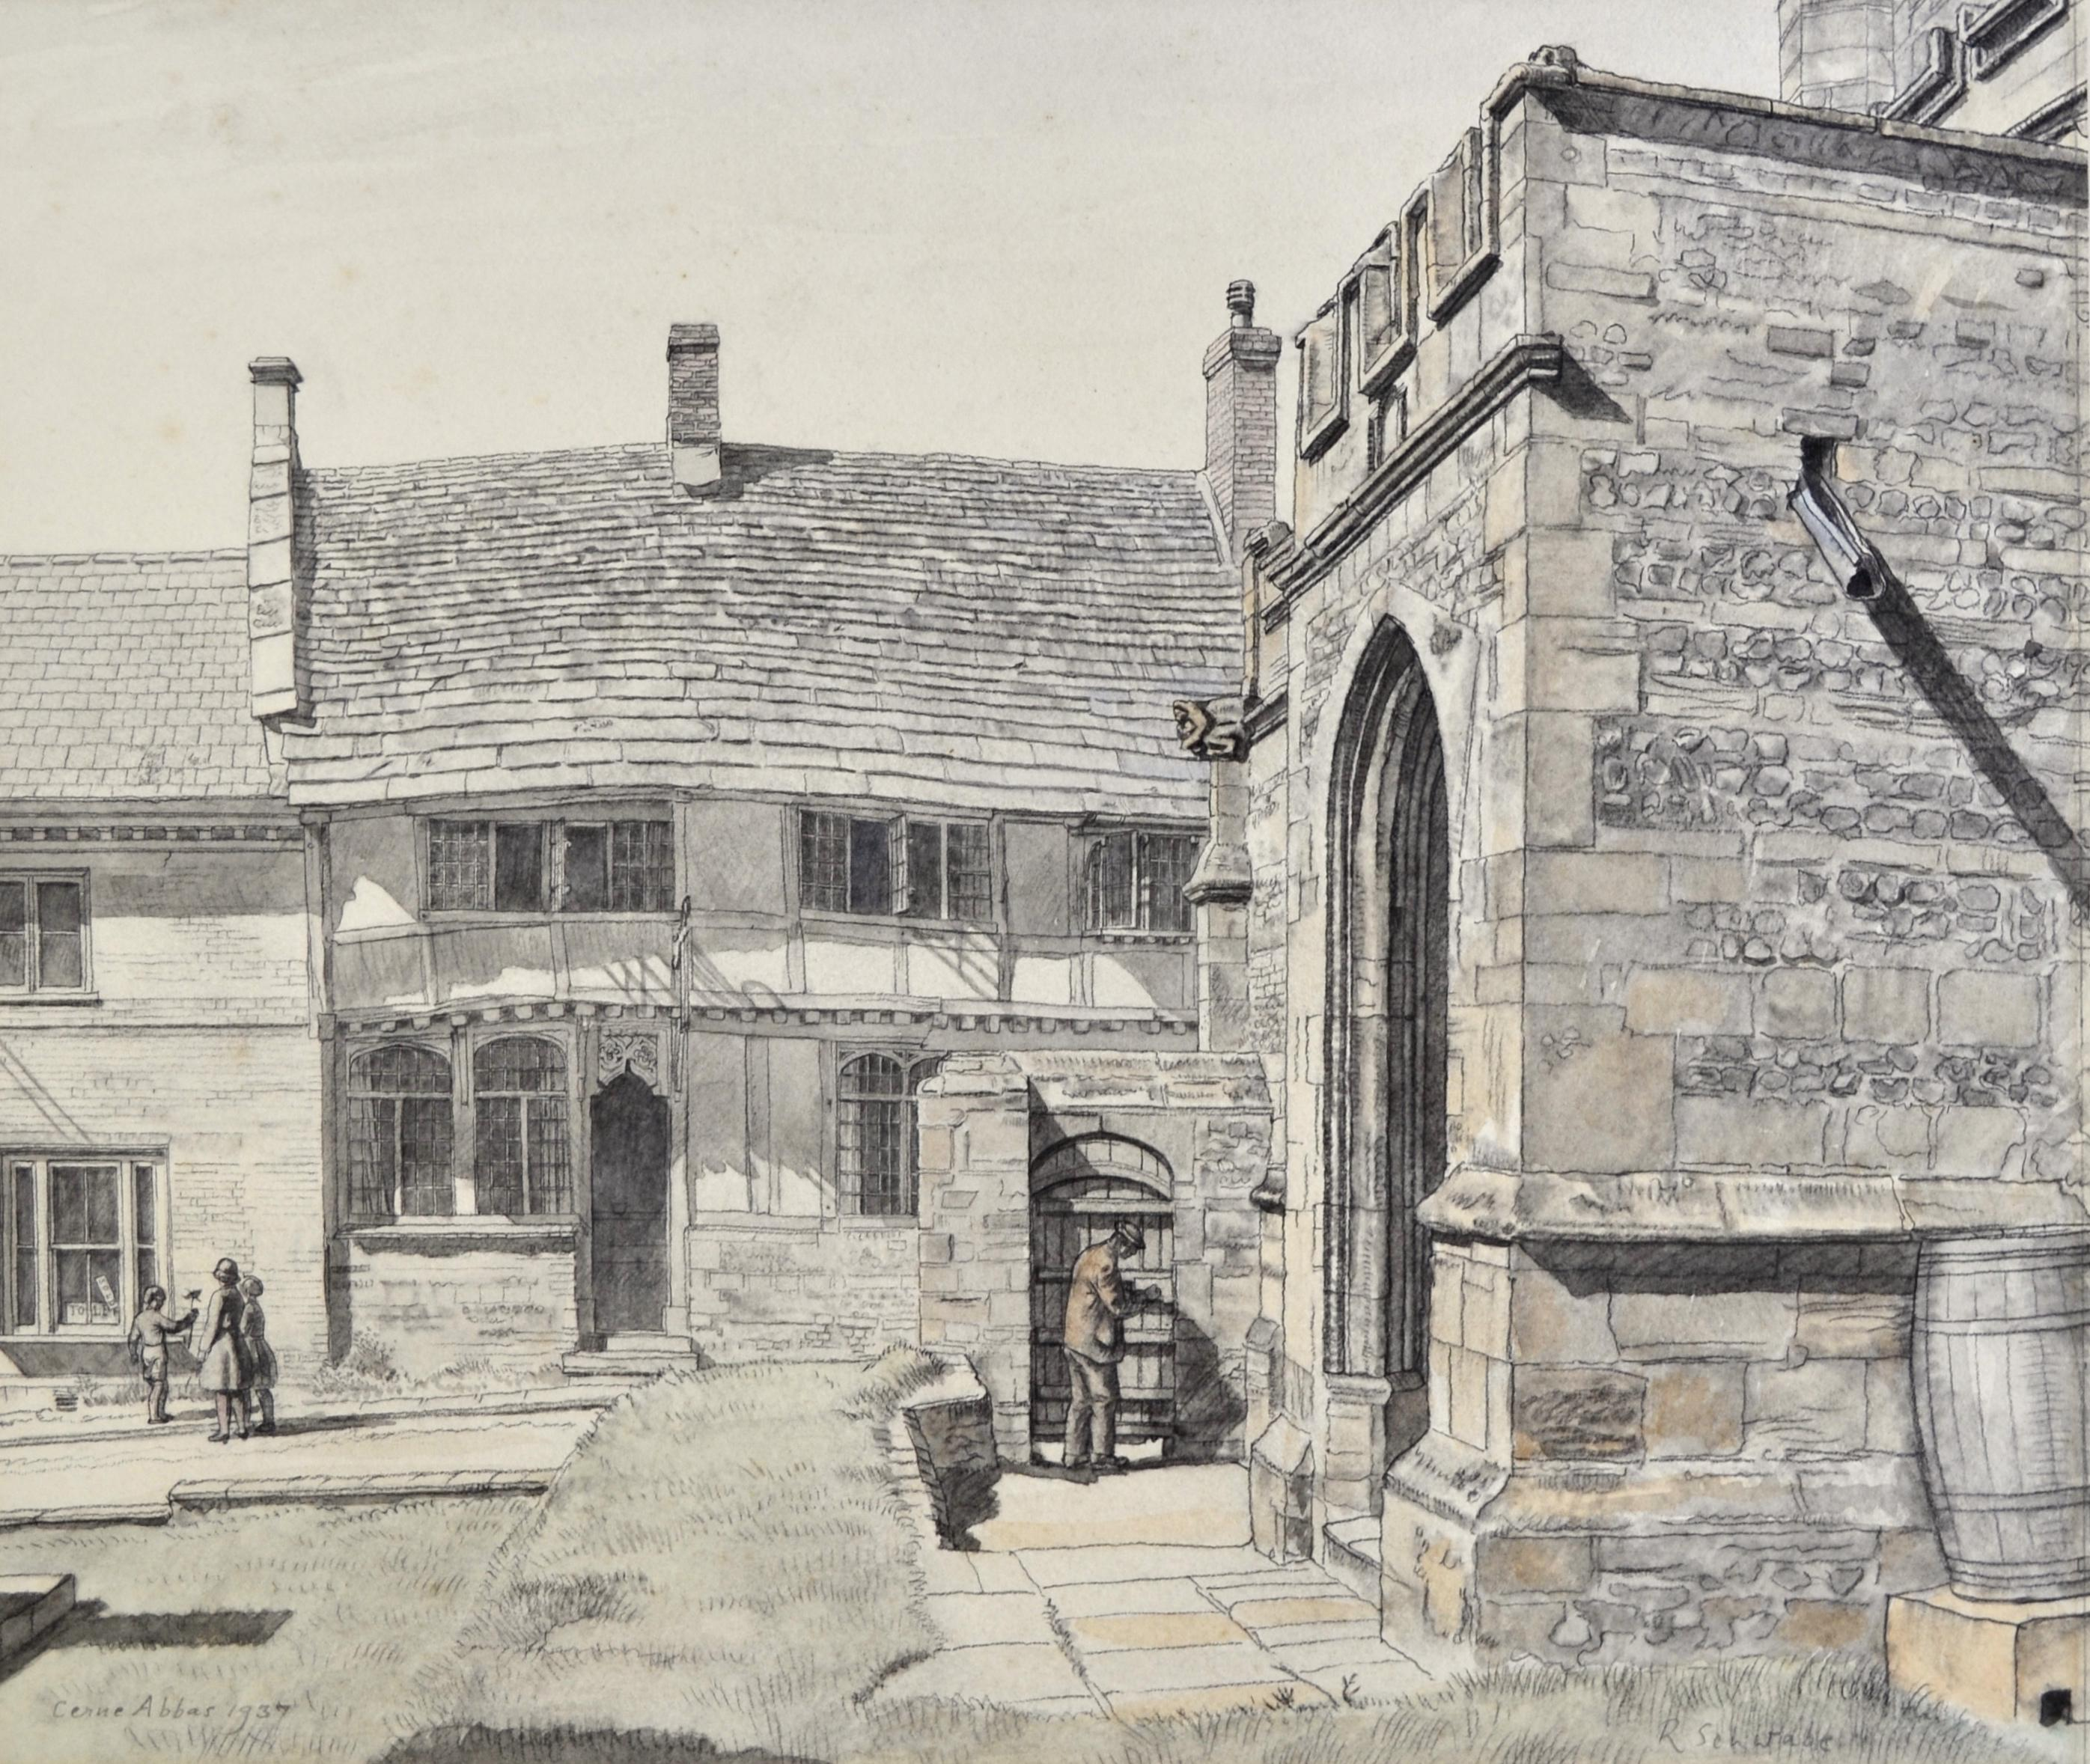 The Pitchmarket, Cerne Abbas - 1930s British watercolour drawing by Schwabe